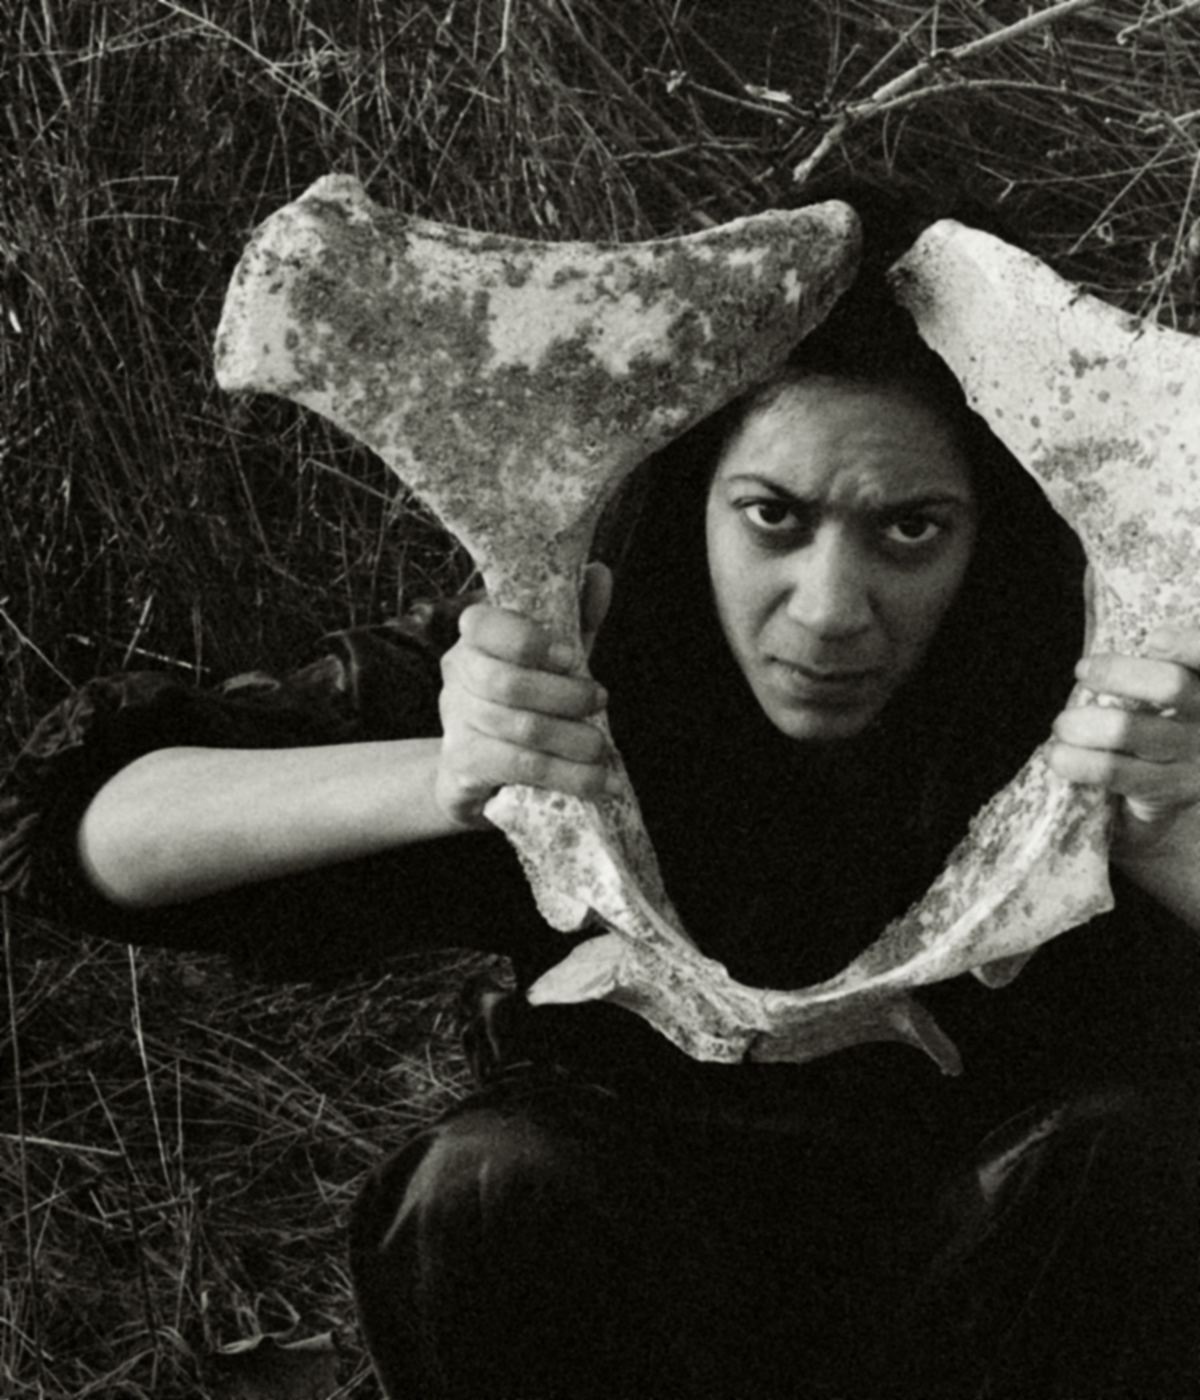 Alicia Grullón, Female with Mulehip, 2005, part of Becoming Myth: An Auto-ethnographic Study.